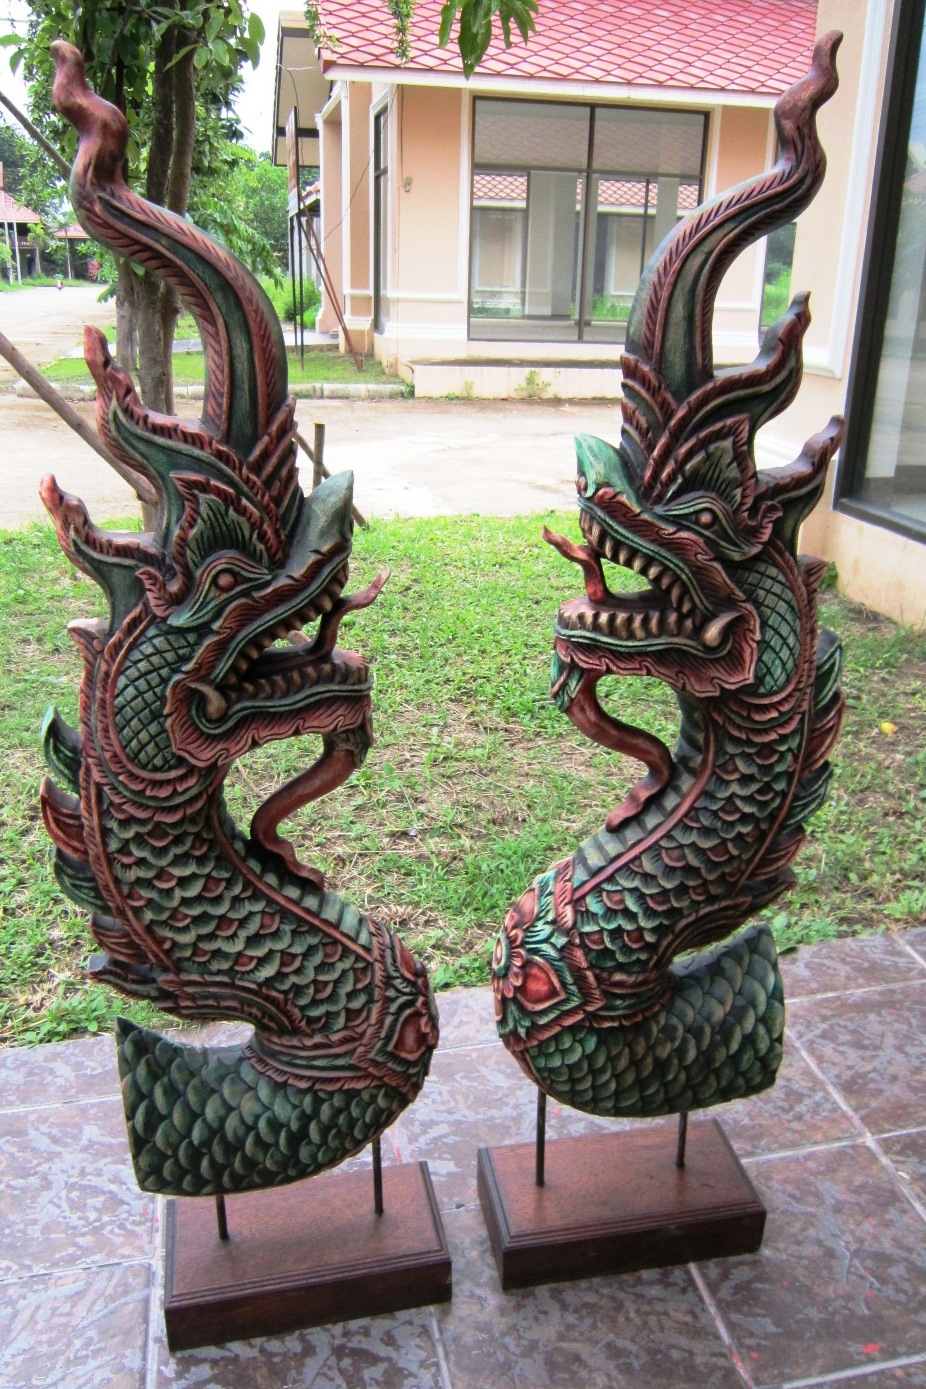 Pair of Naga Heads